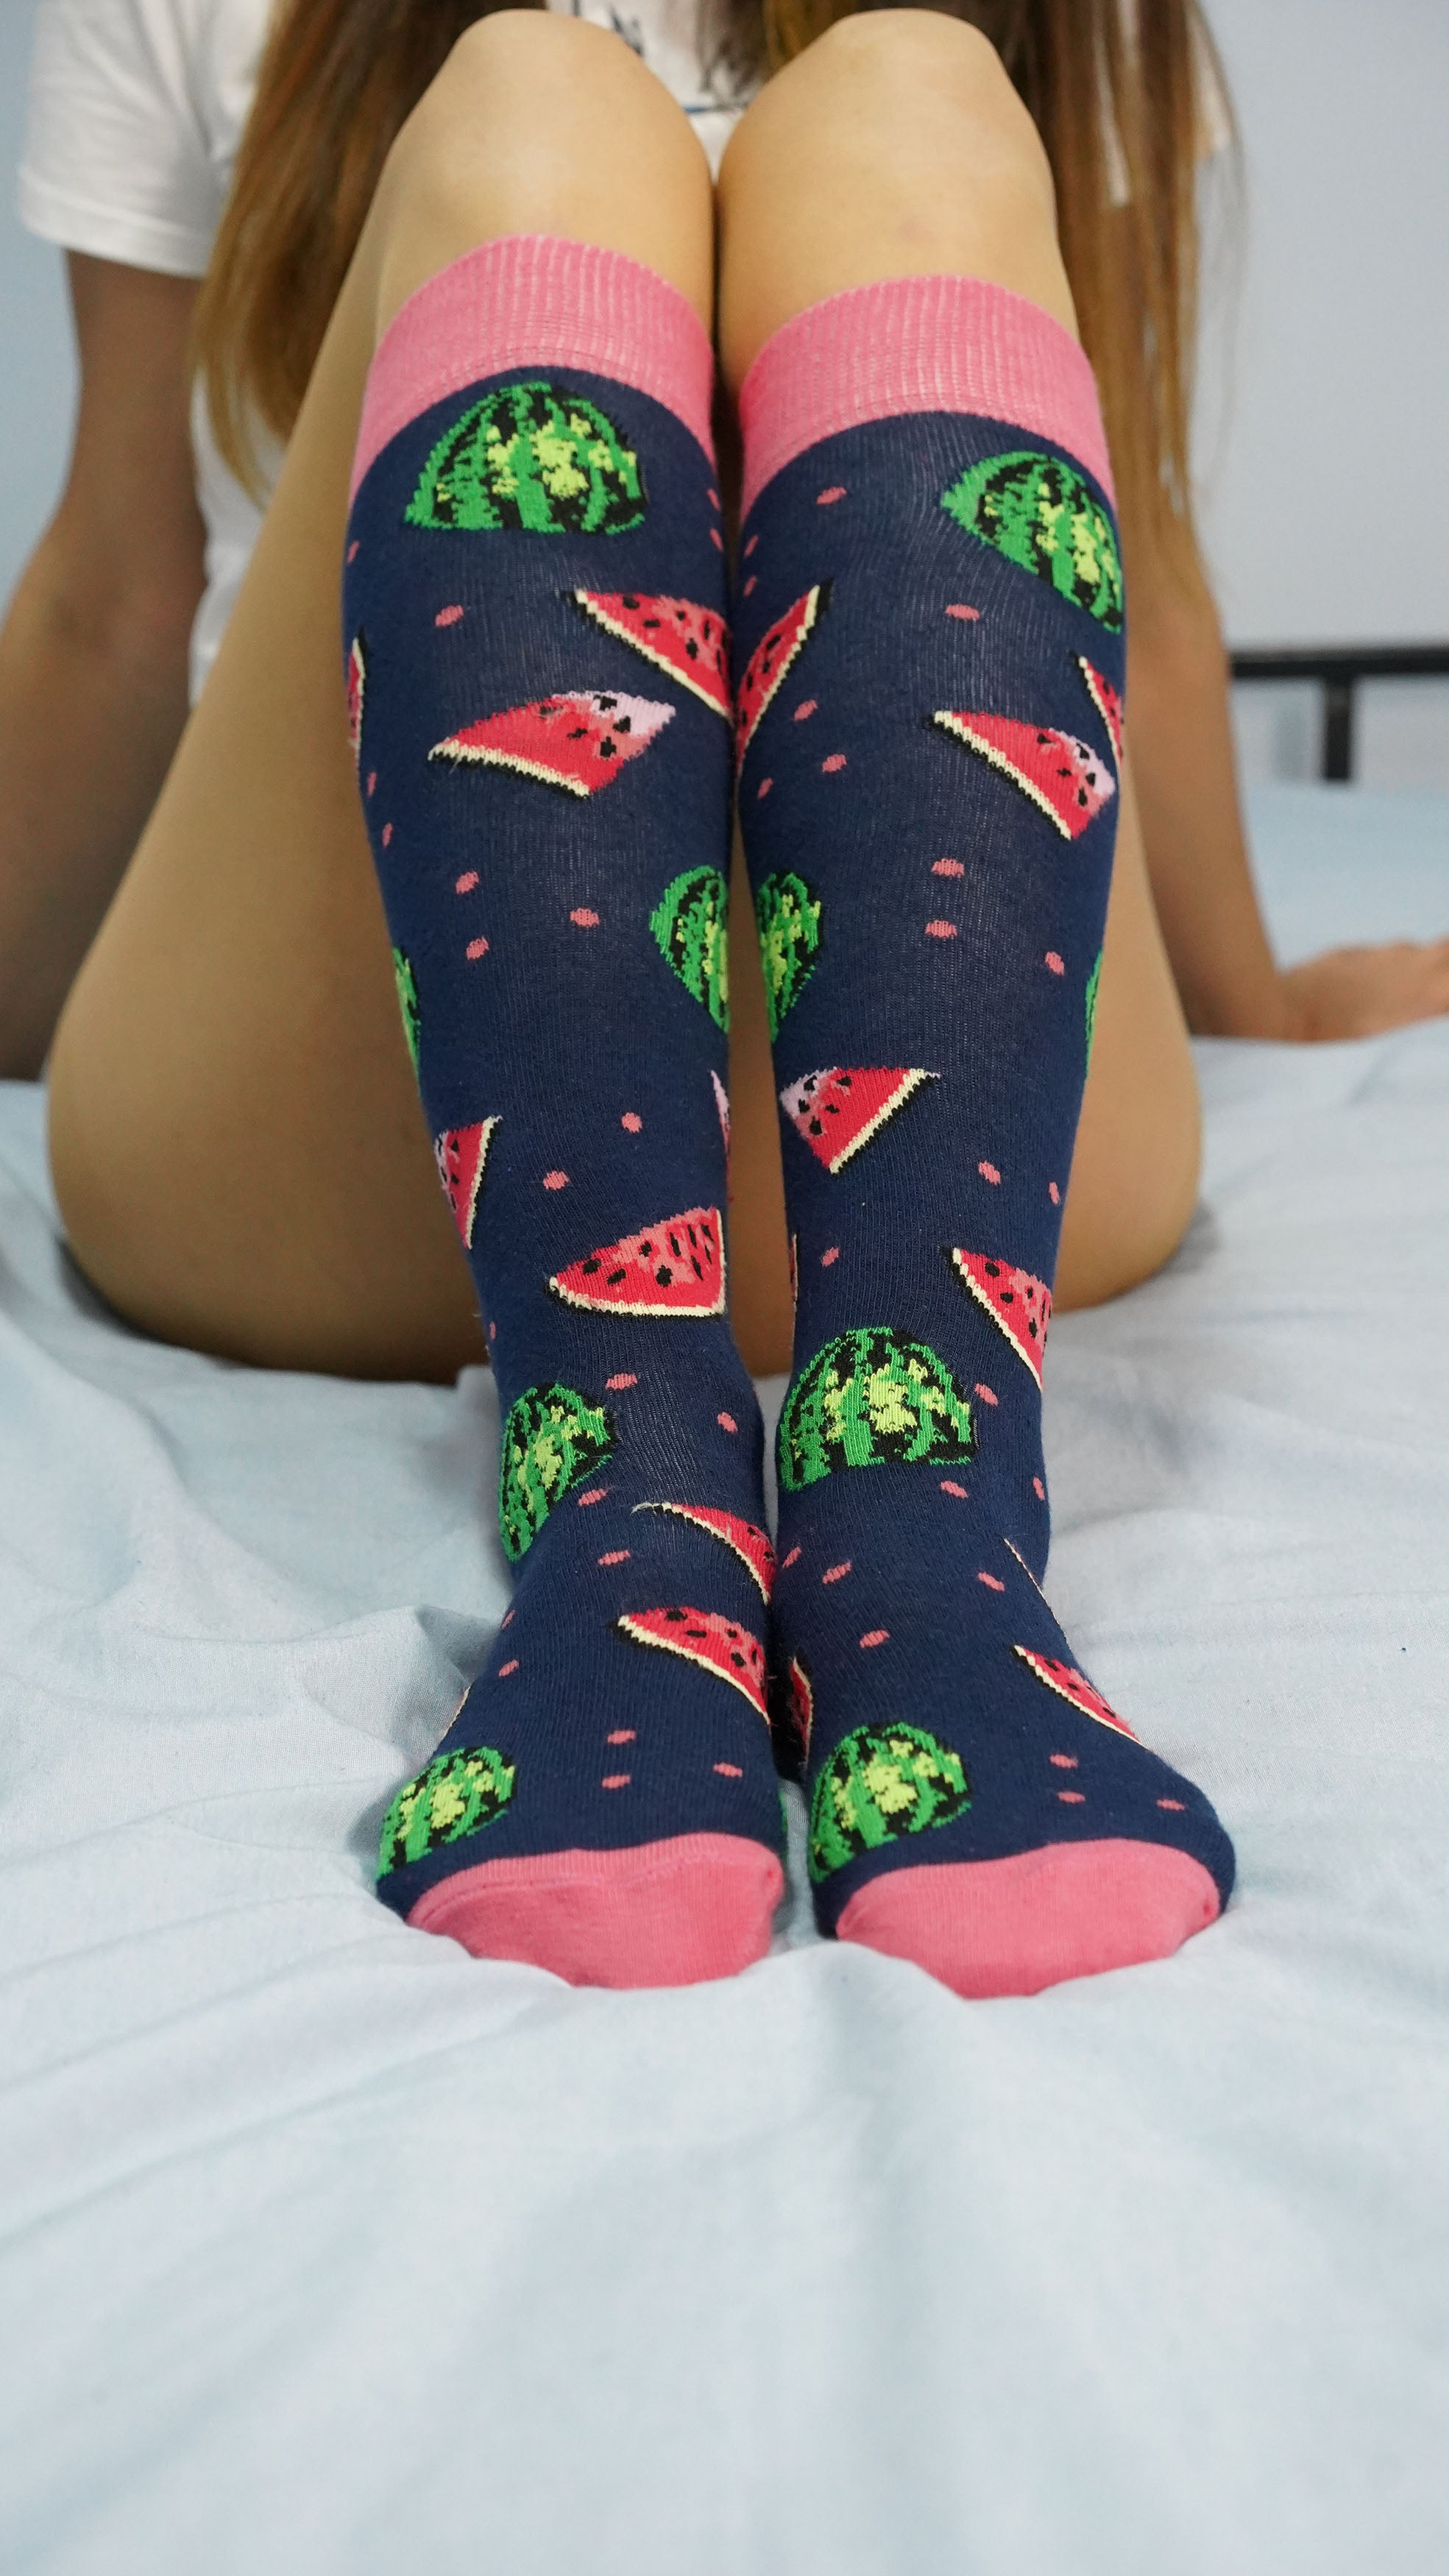 Women's Watermelon Knee High Socks